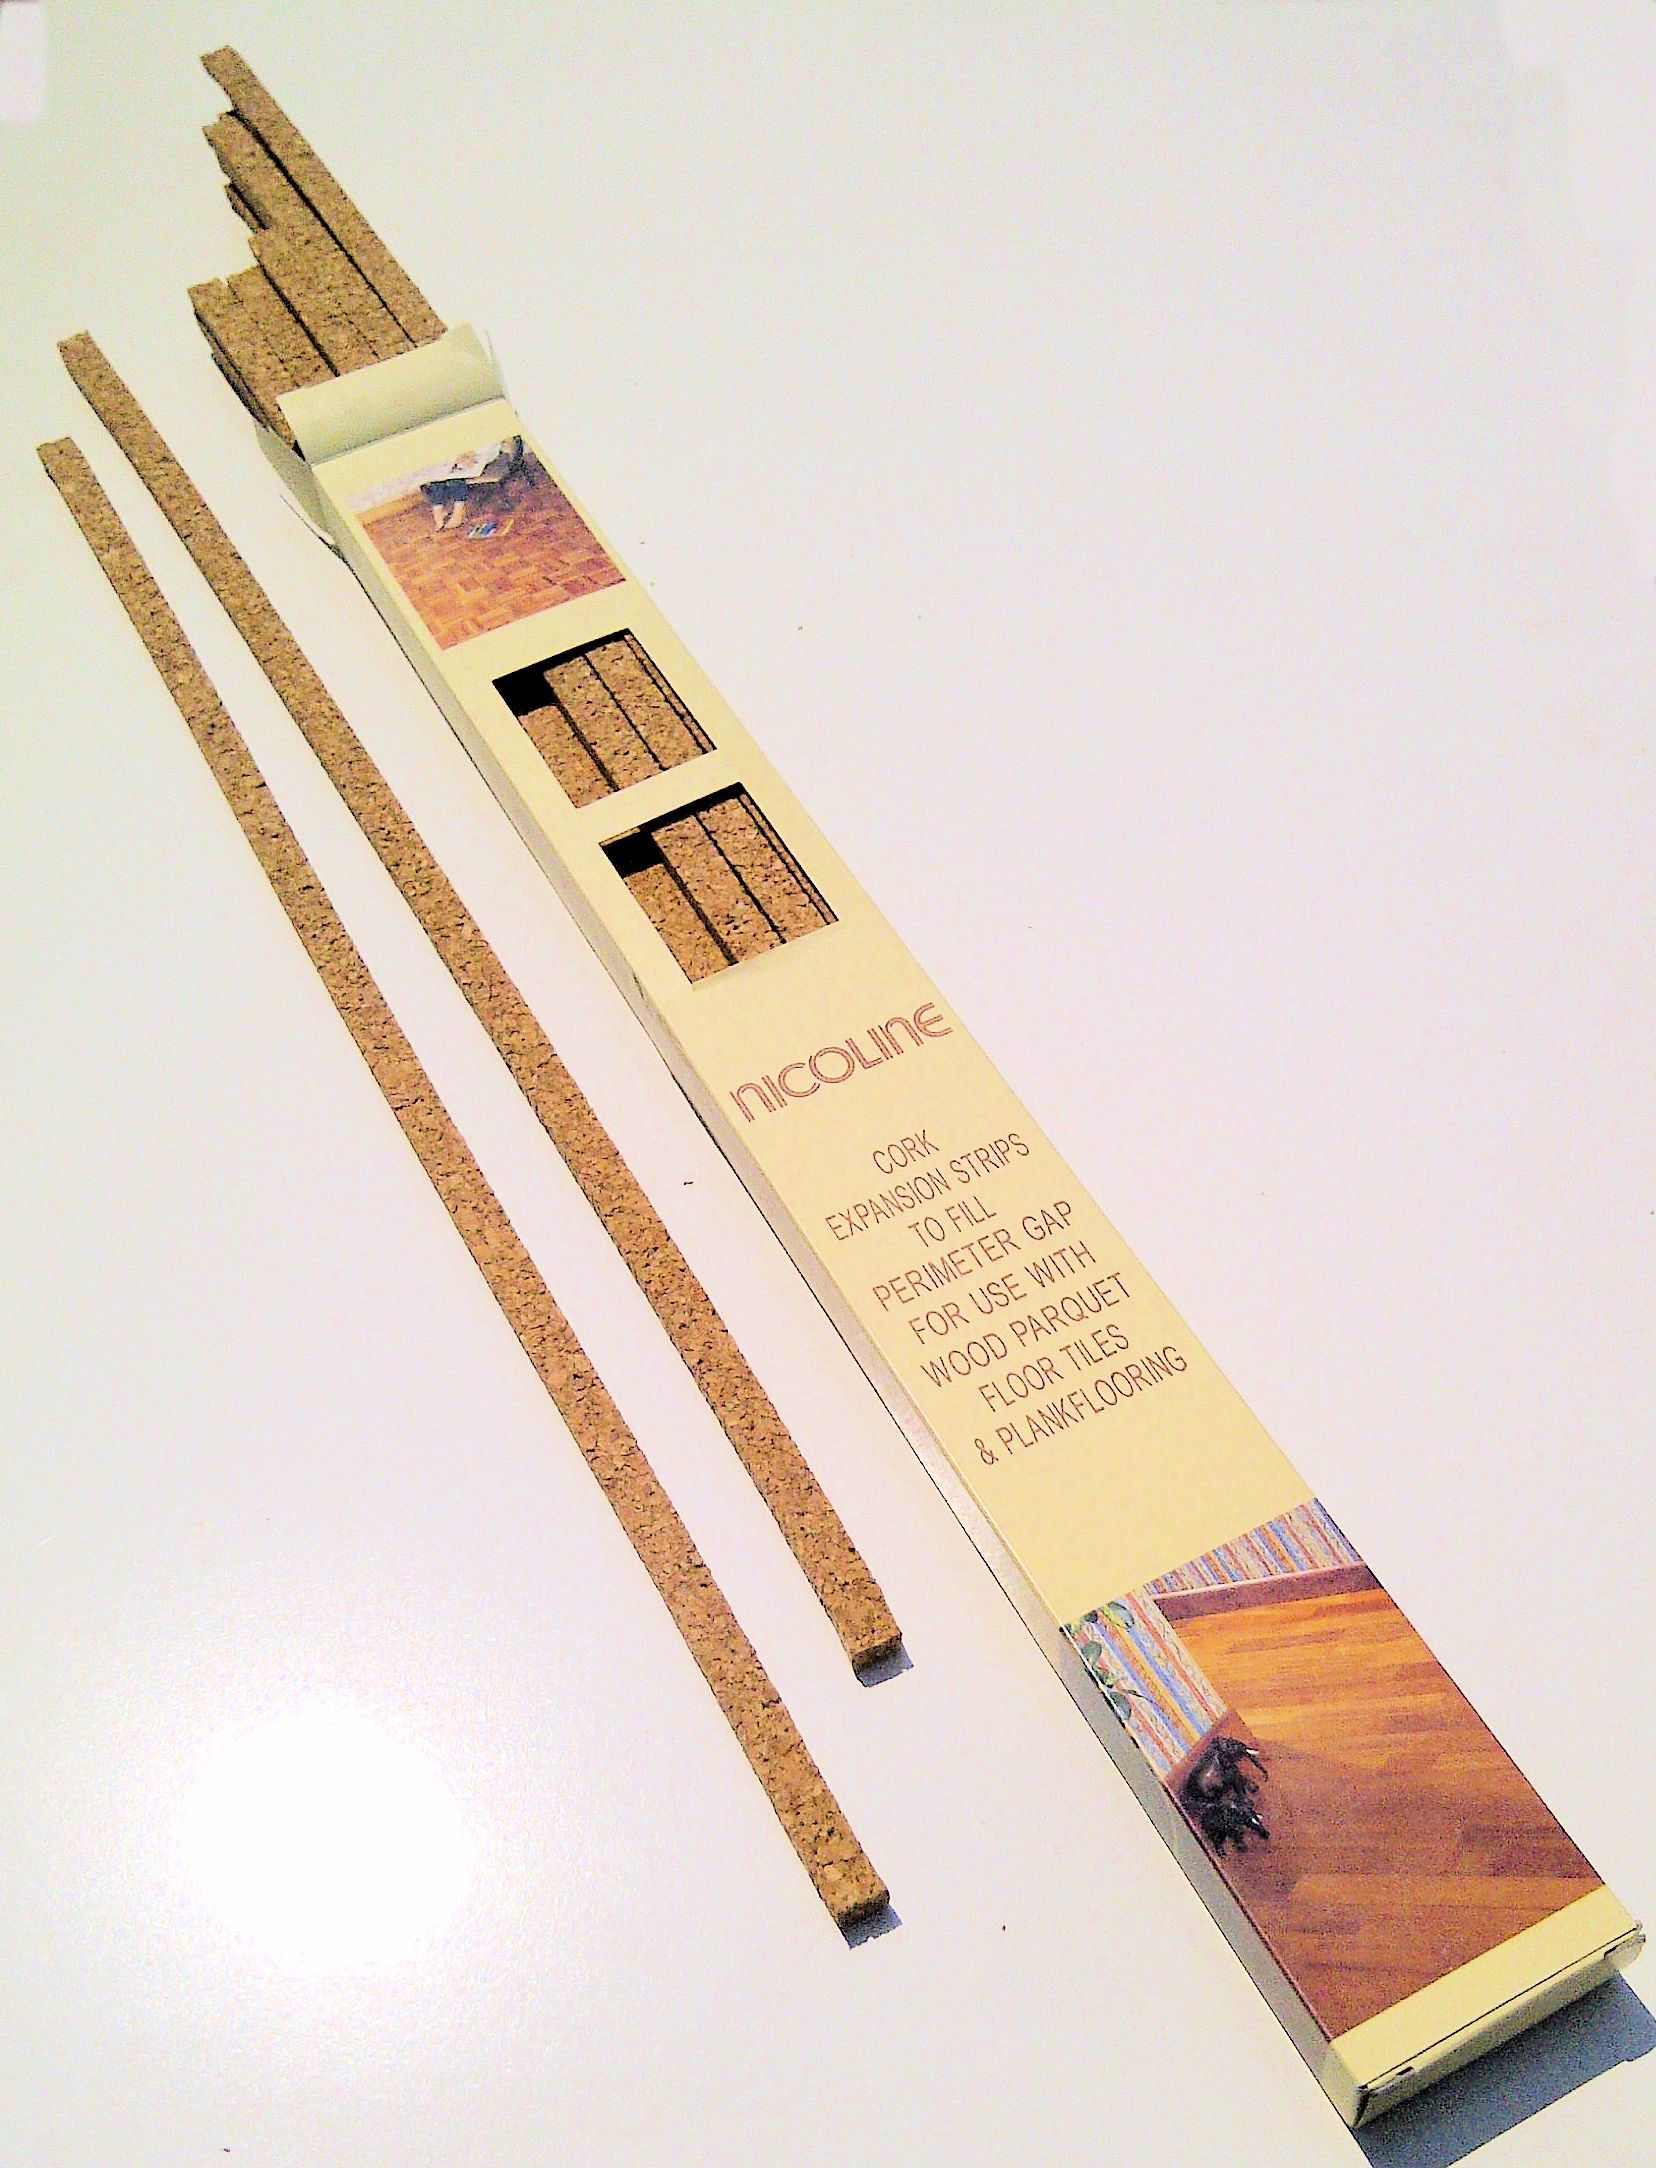 Cork Expansion Strips Suitable For Edging Solid Wood Flooring Allowing The Wood To Expand And Contract Naturally Flooring Wood Parquet Flooring Diy Flooring